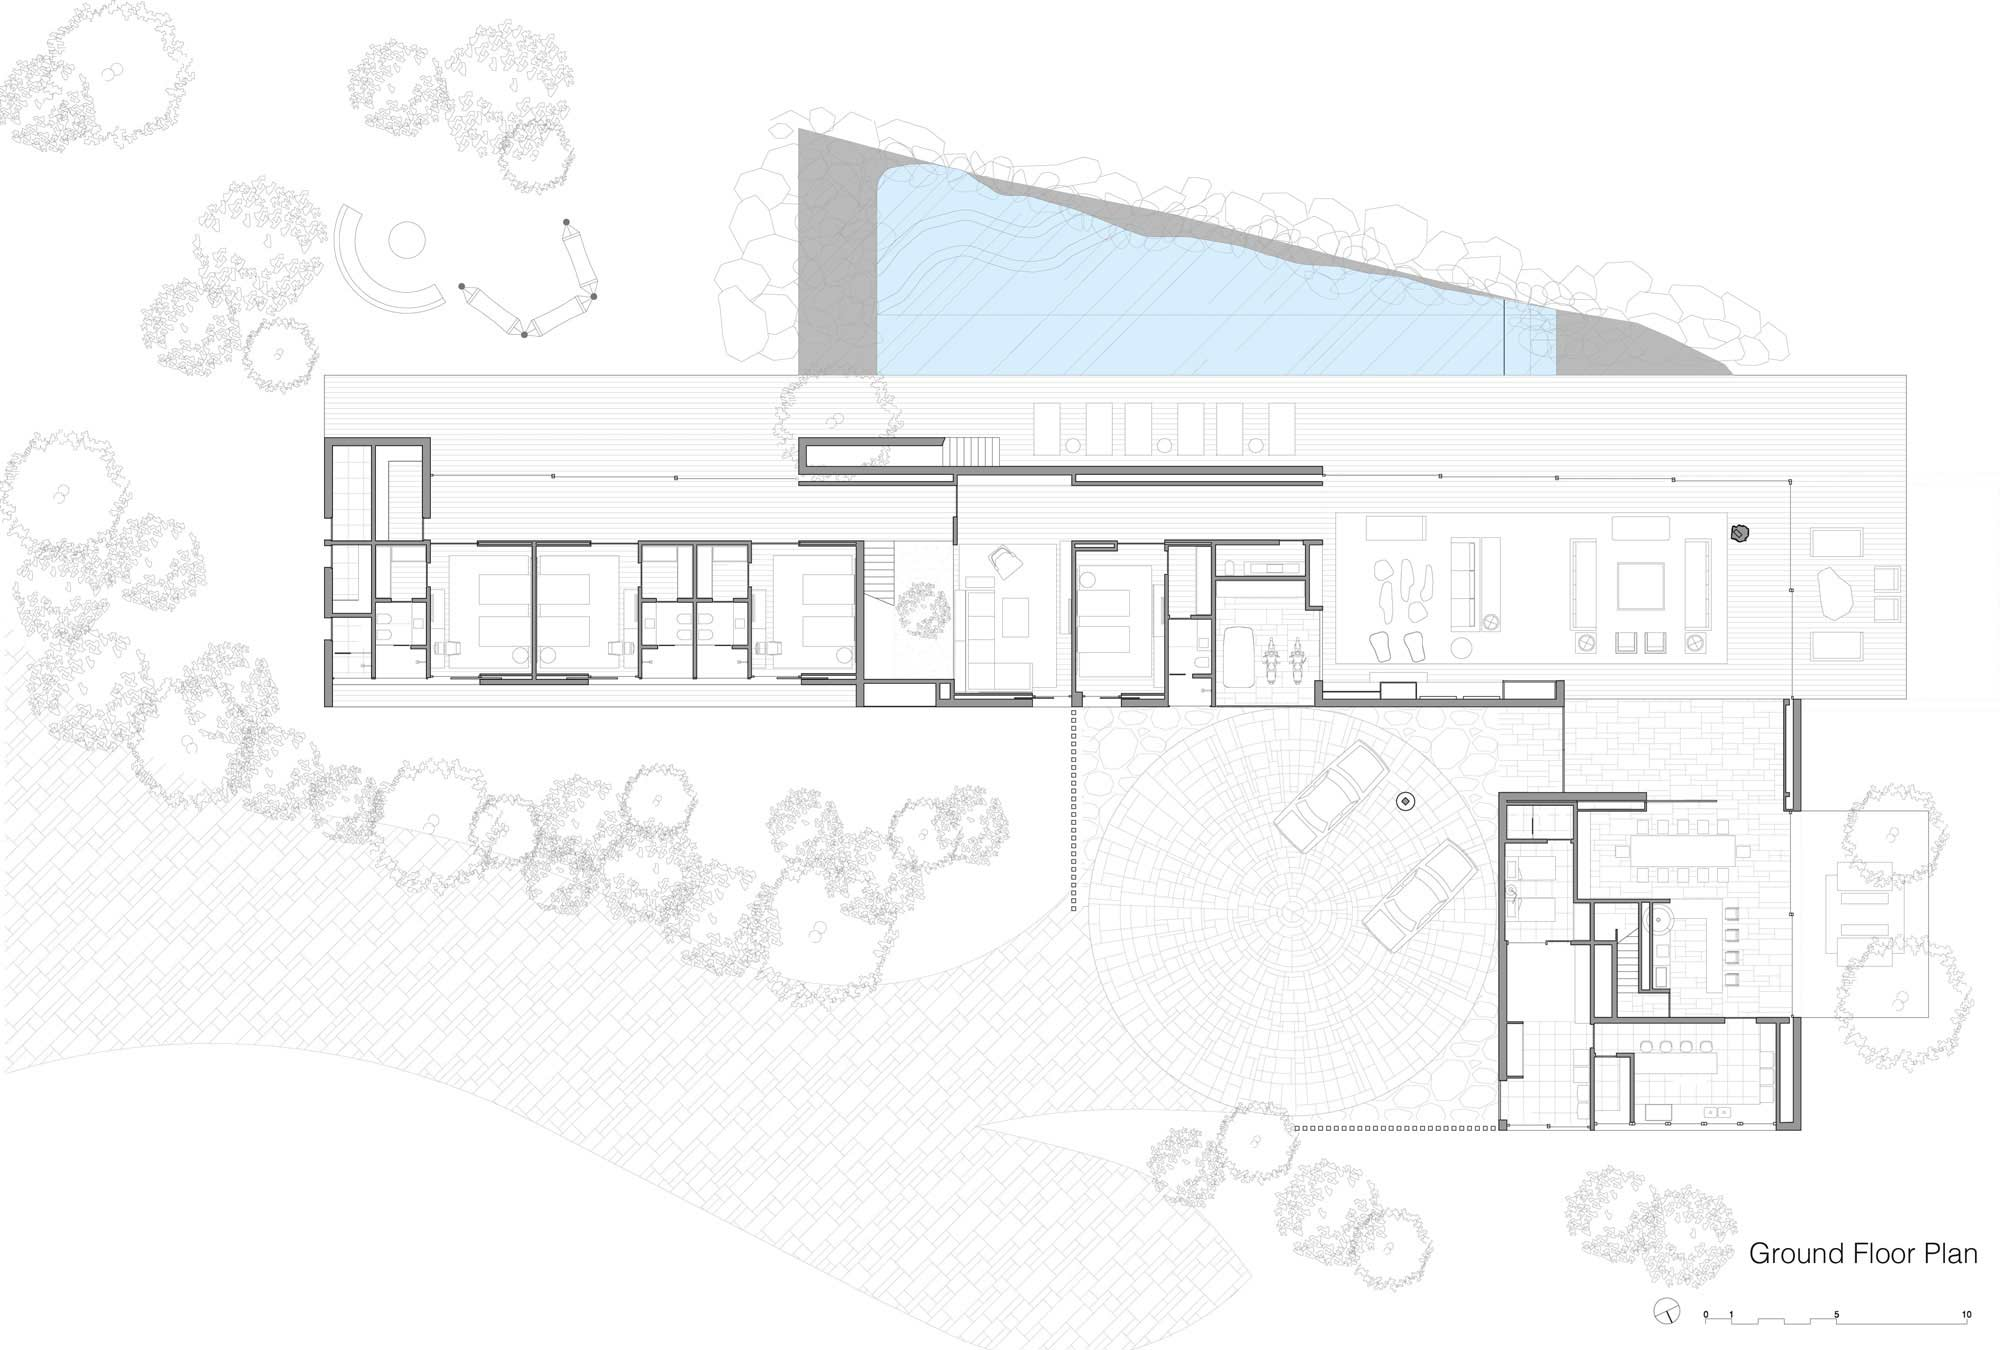 Ground Floor Plan, Casa Itu in São Paulo, Brazil by Studio Arthur Casas